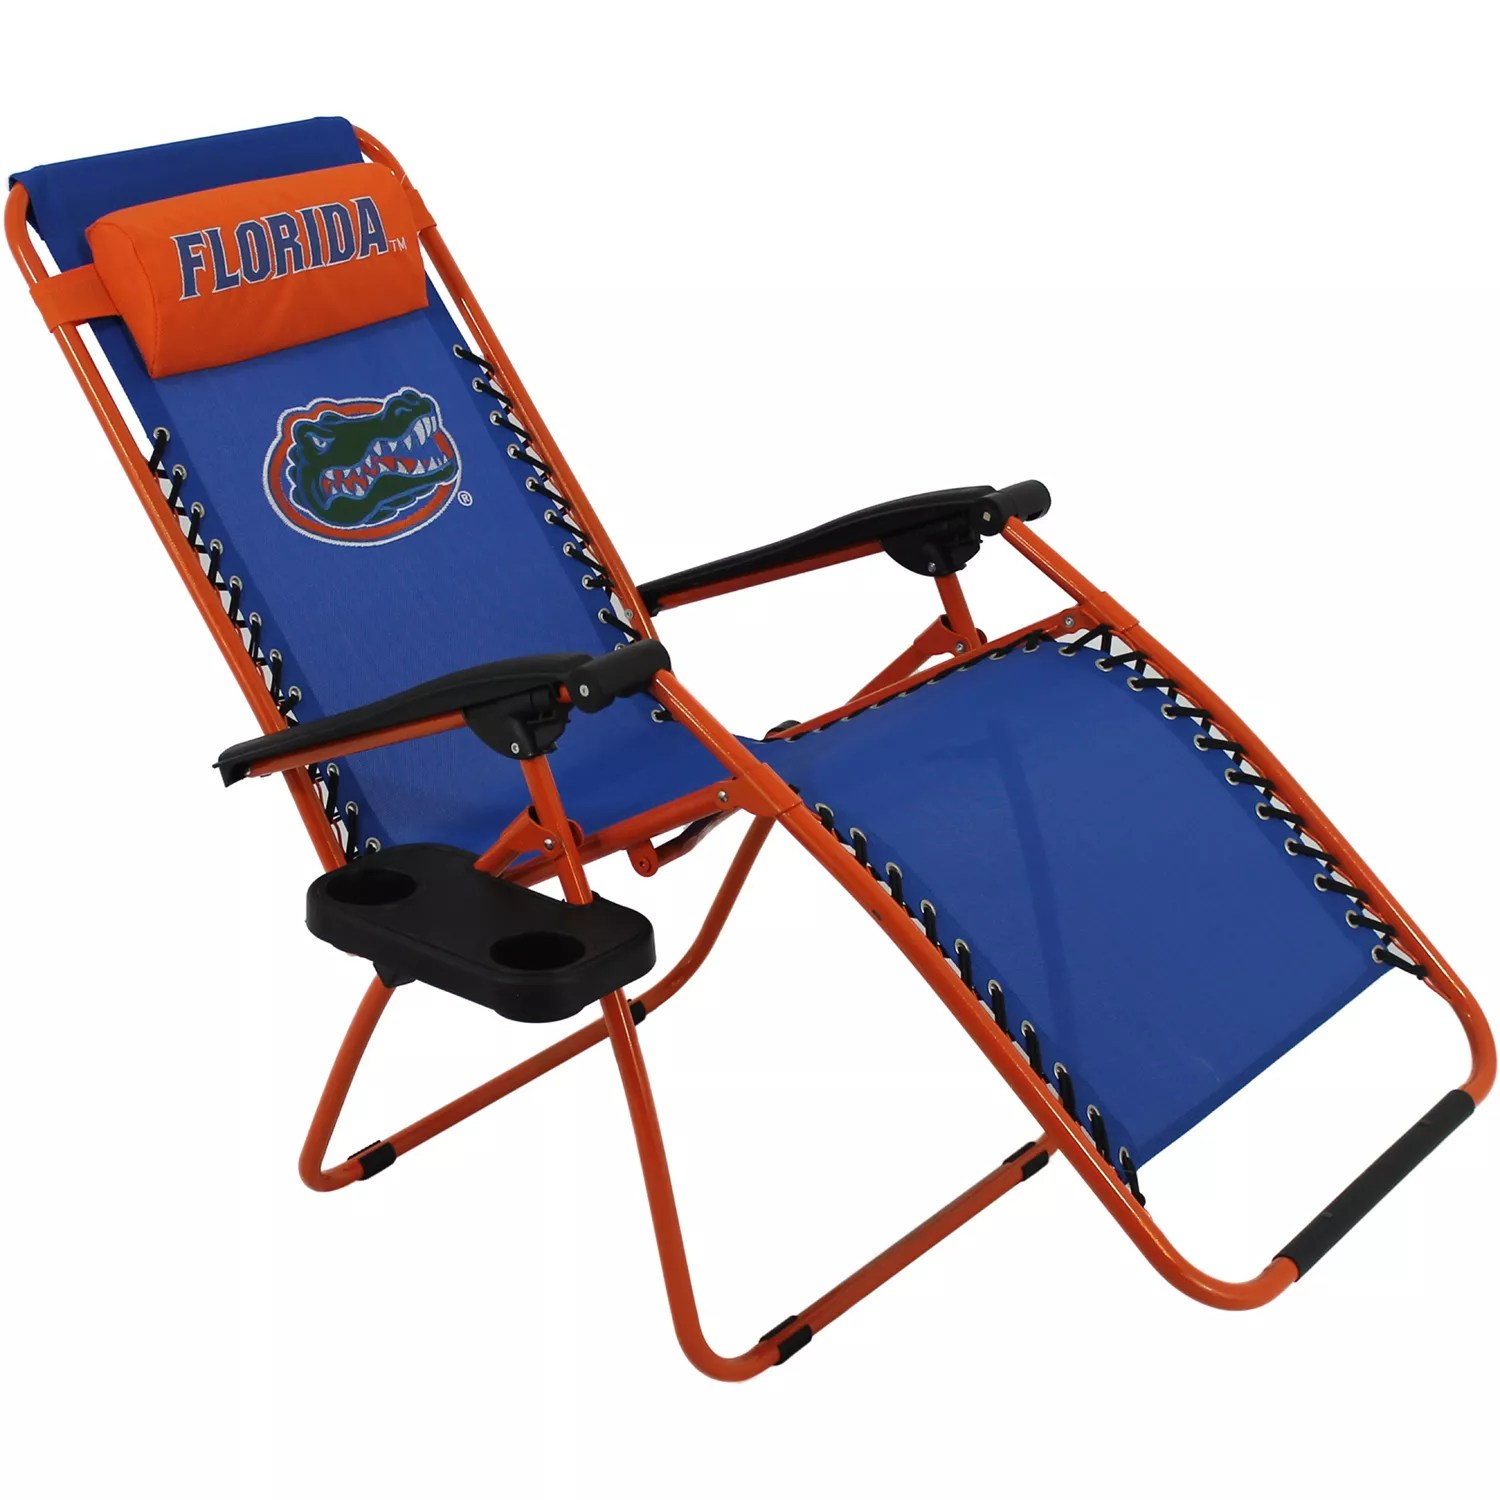 kohls zero gravity chair lift accessories chairs kohl s college covers florida gators